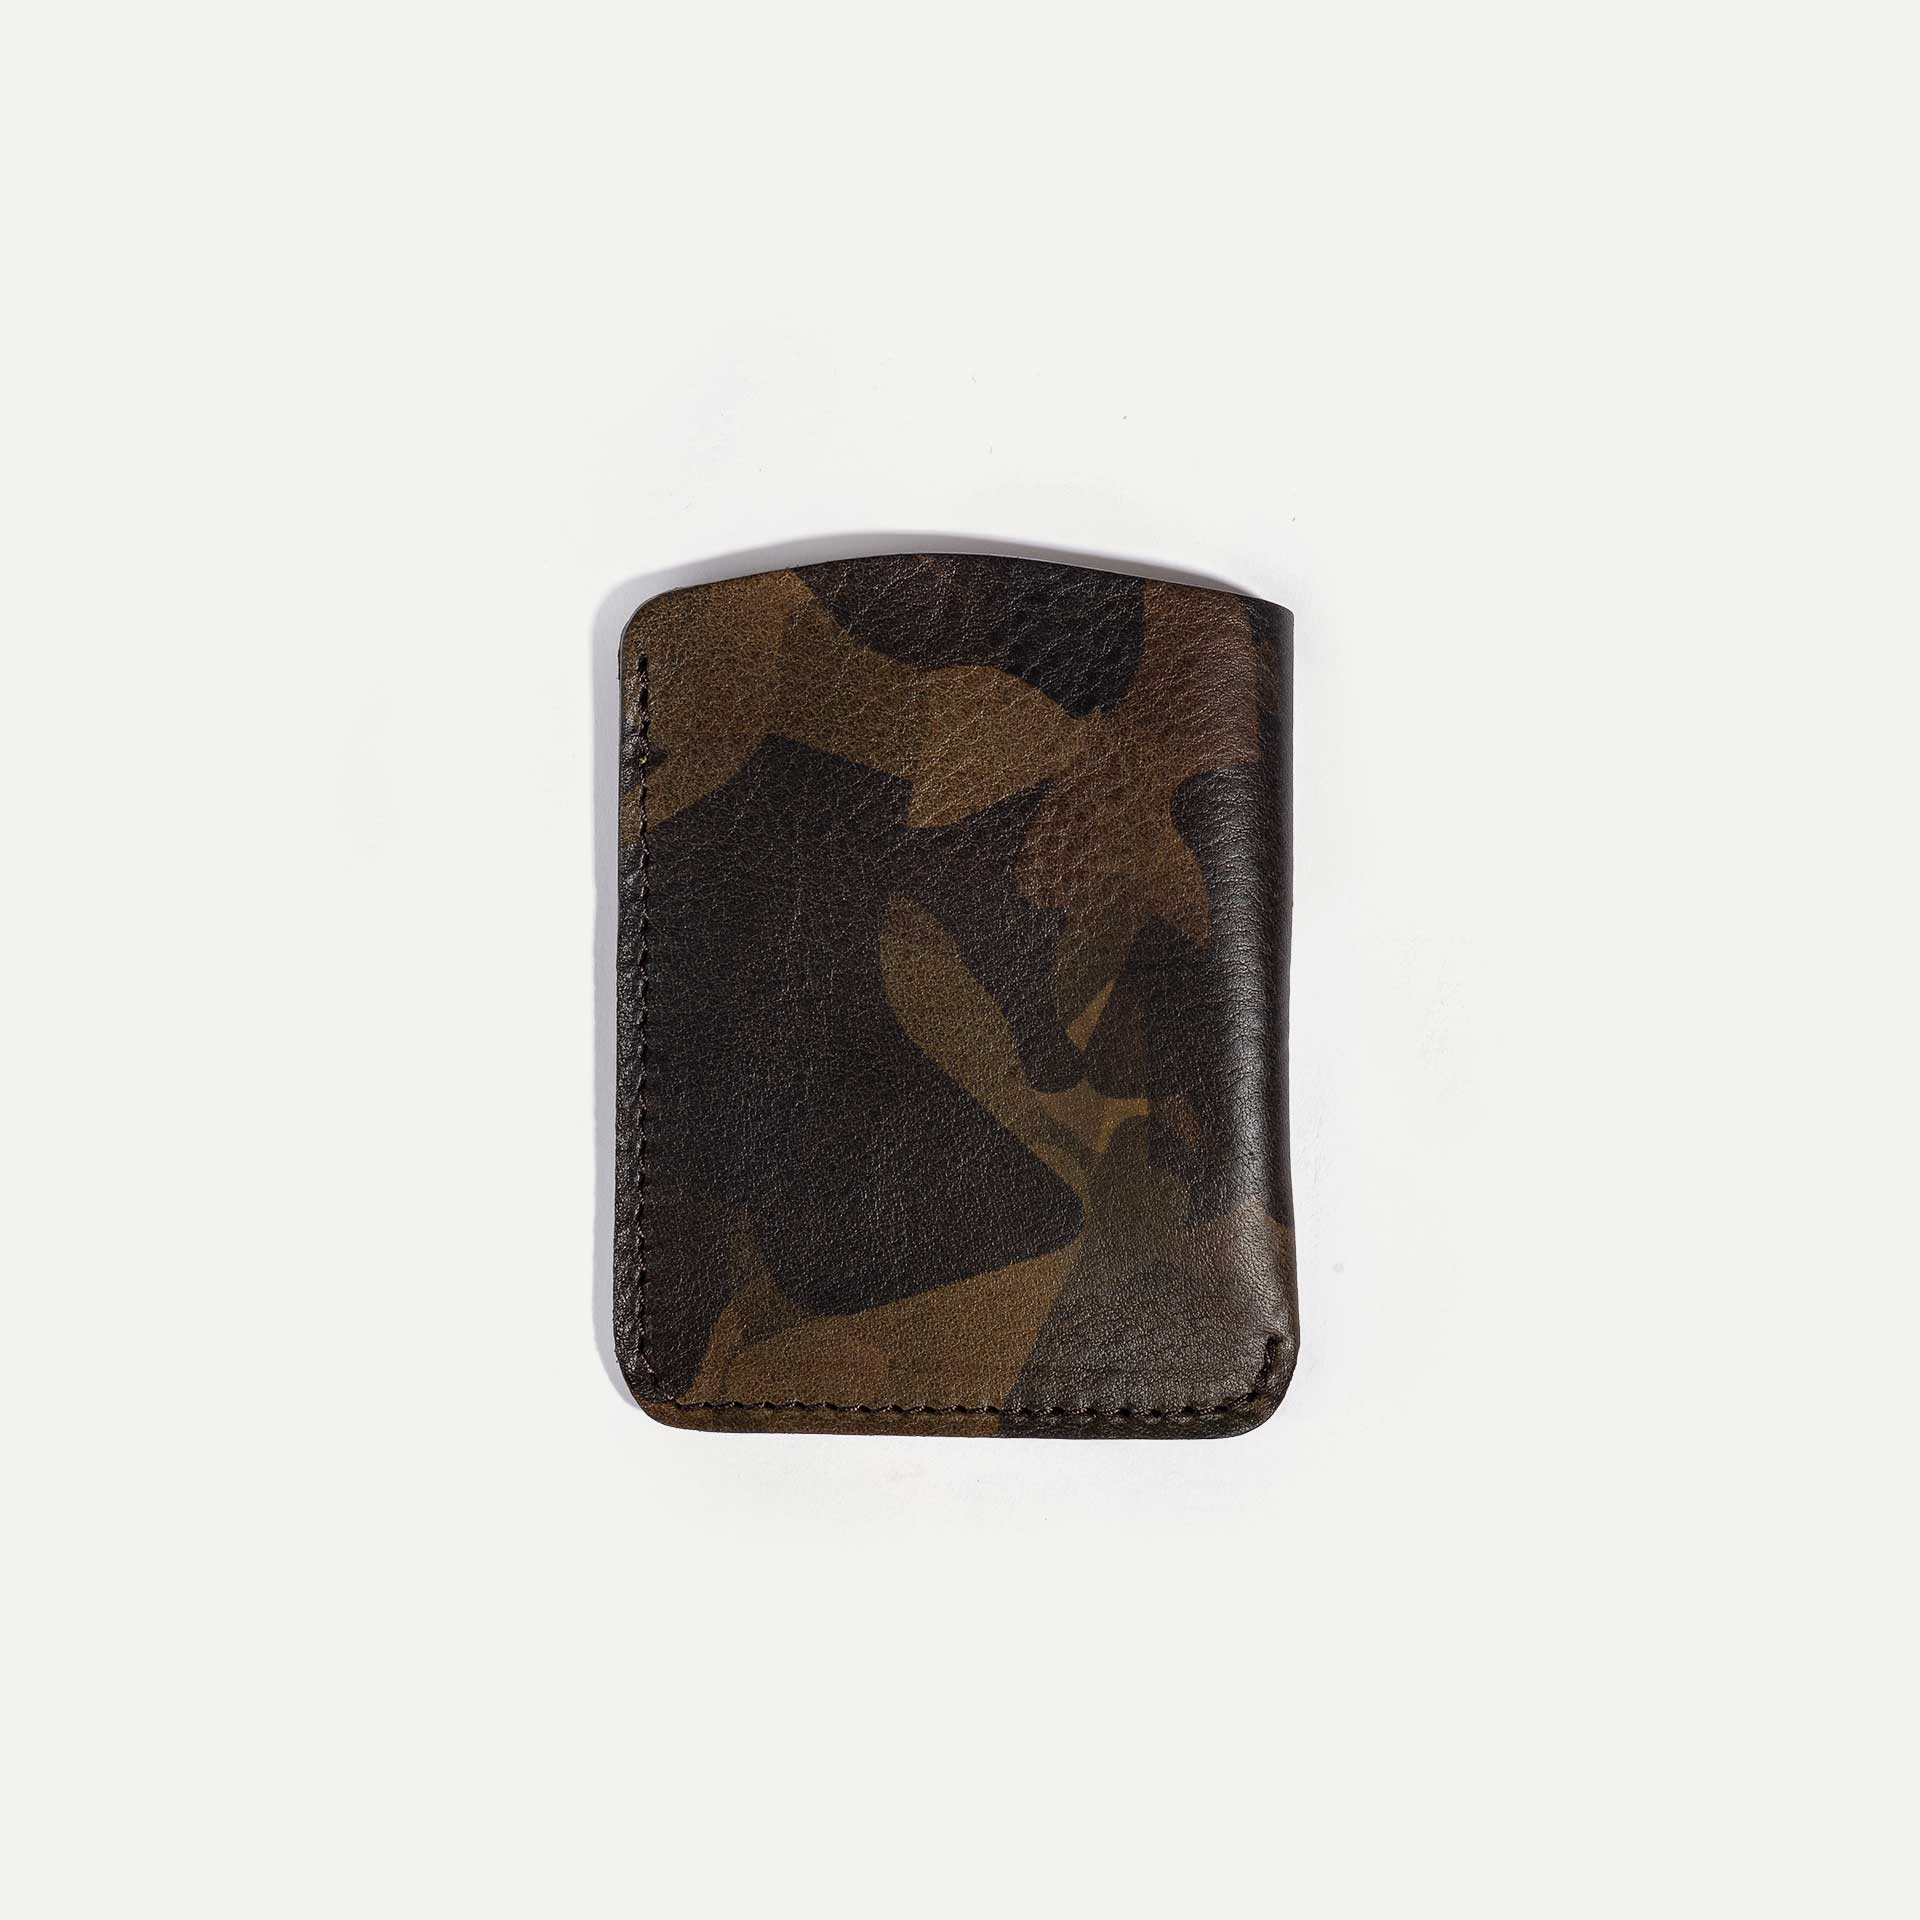 Intro business card holder - Camo (image n°2)